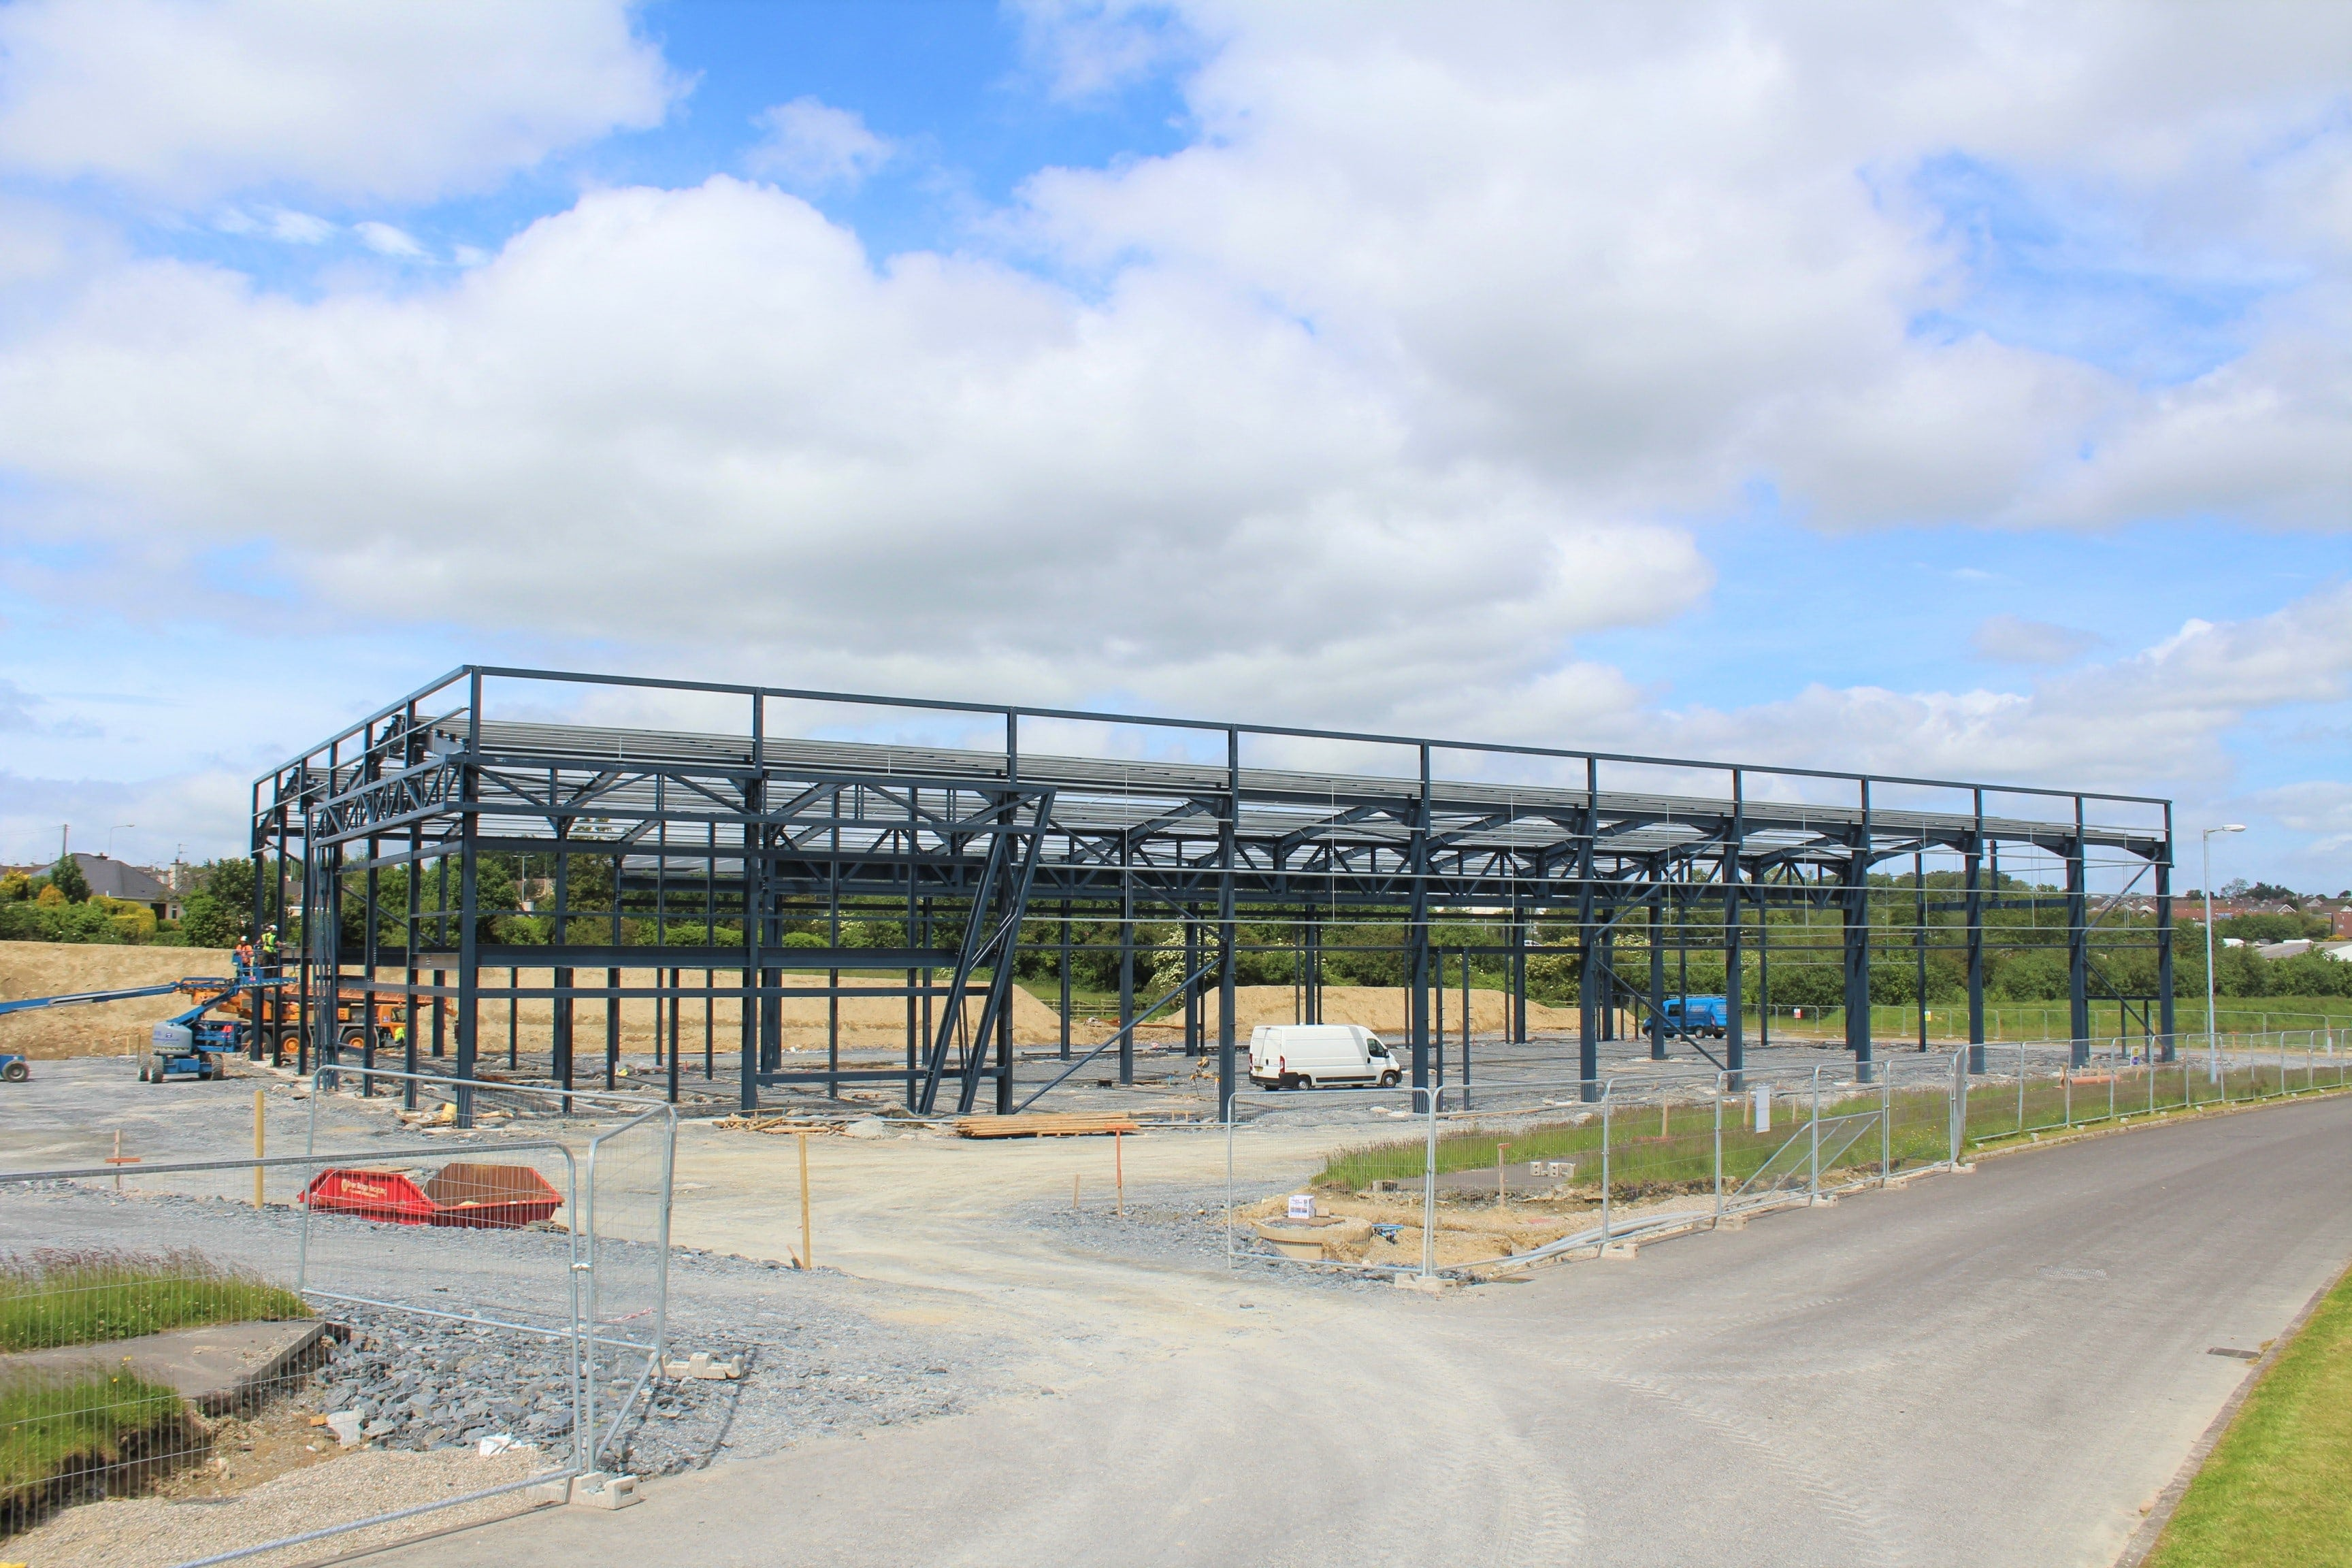 Week 10 KES Group Strabane Manufacturing Facility and Office Walter Watsons